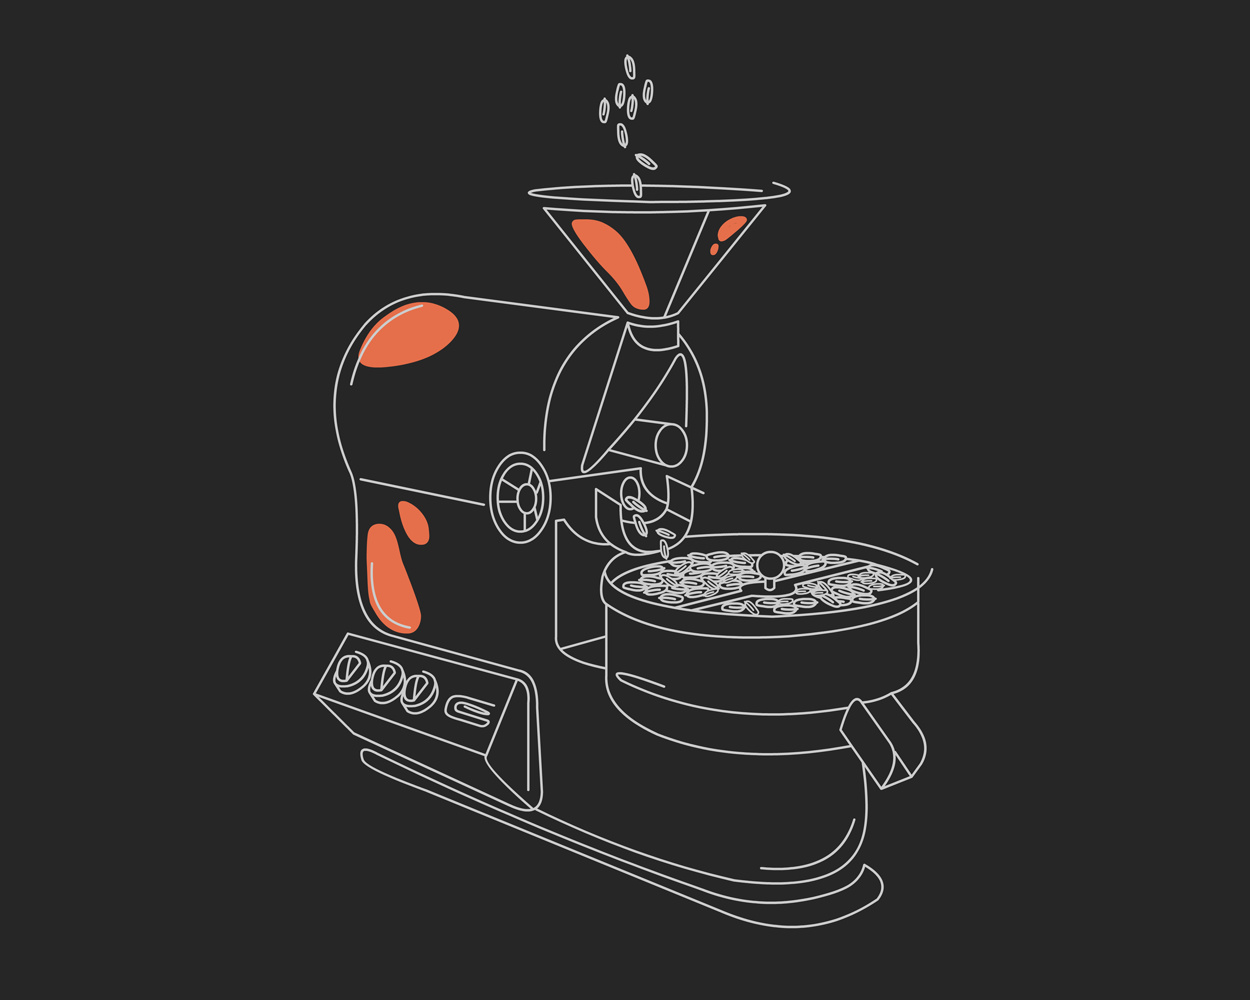 Barista rebranding Illustration